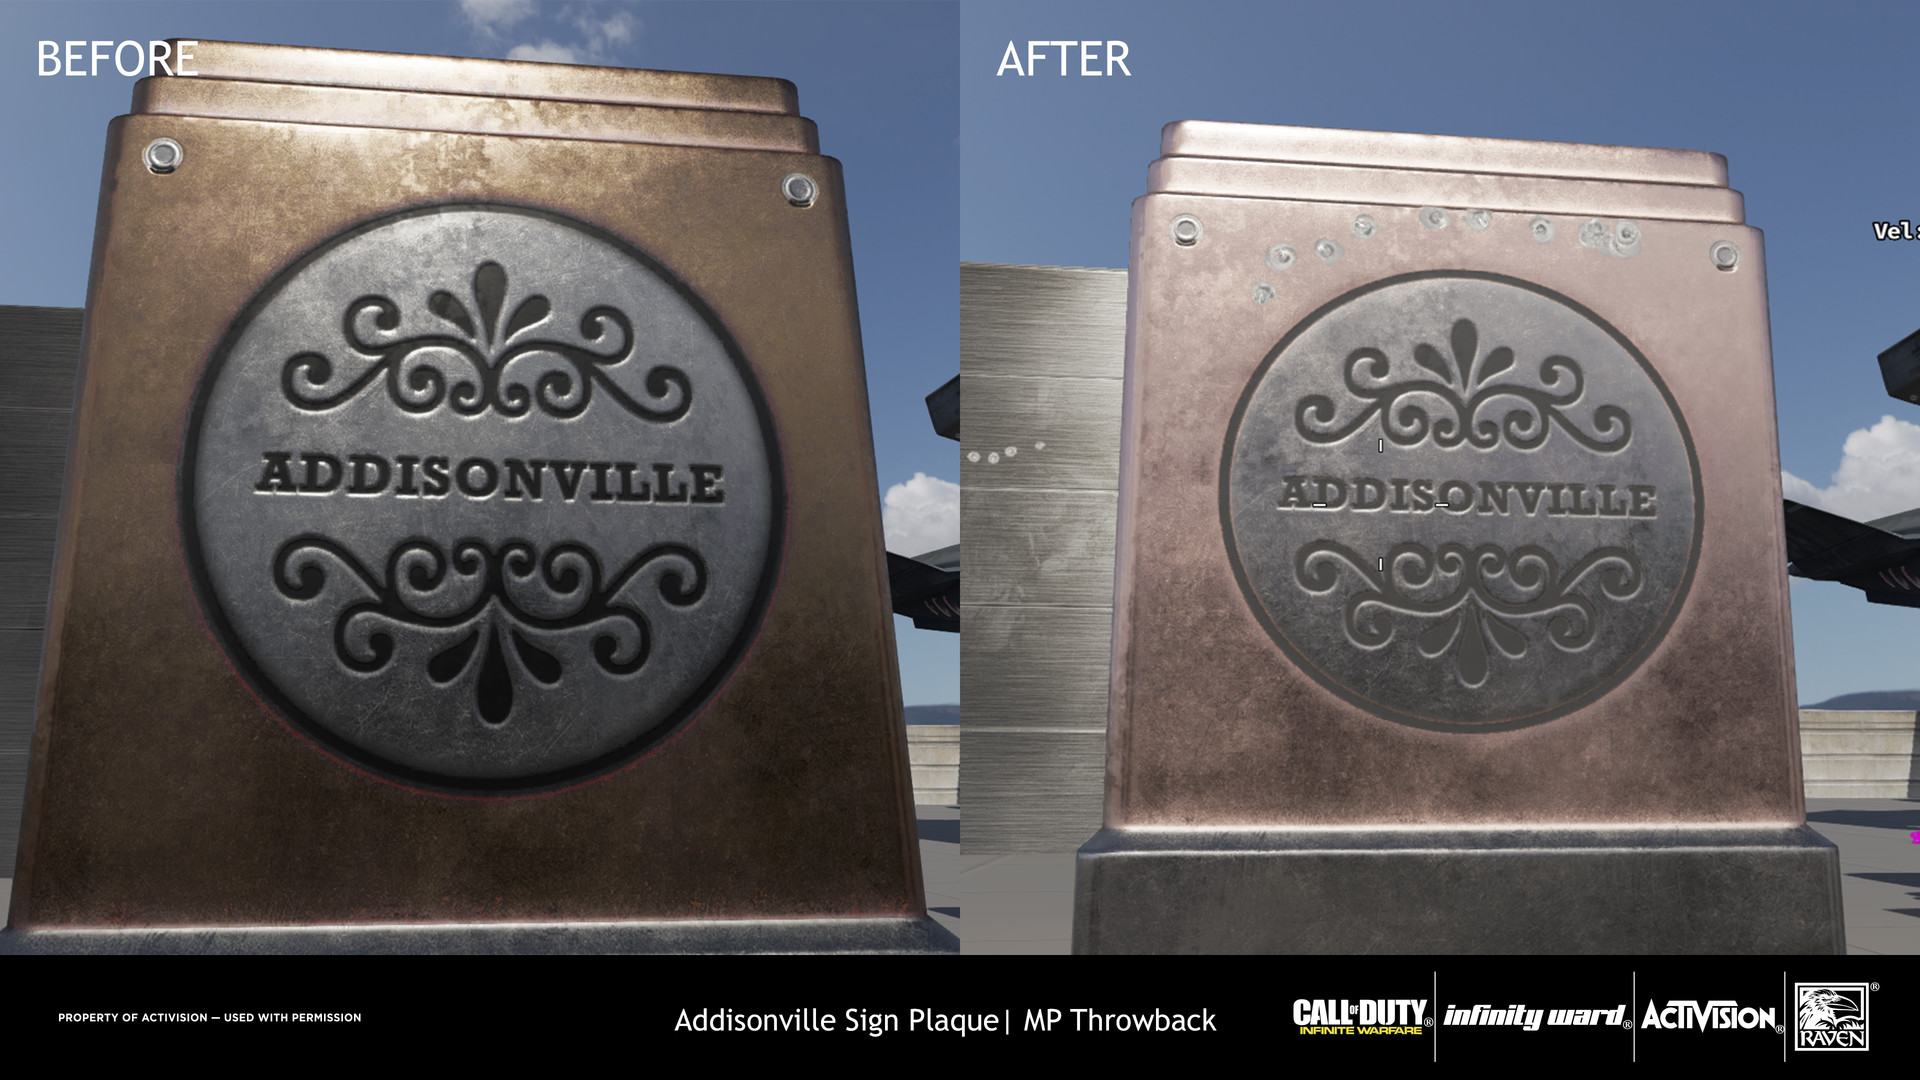 Specular values were adjusted to better match Iron metal, values for the lettering and outline were adjusted to not be dark.